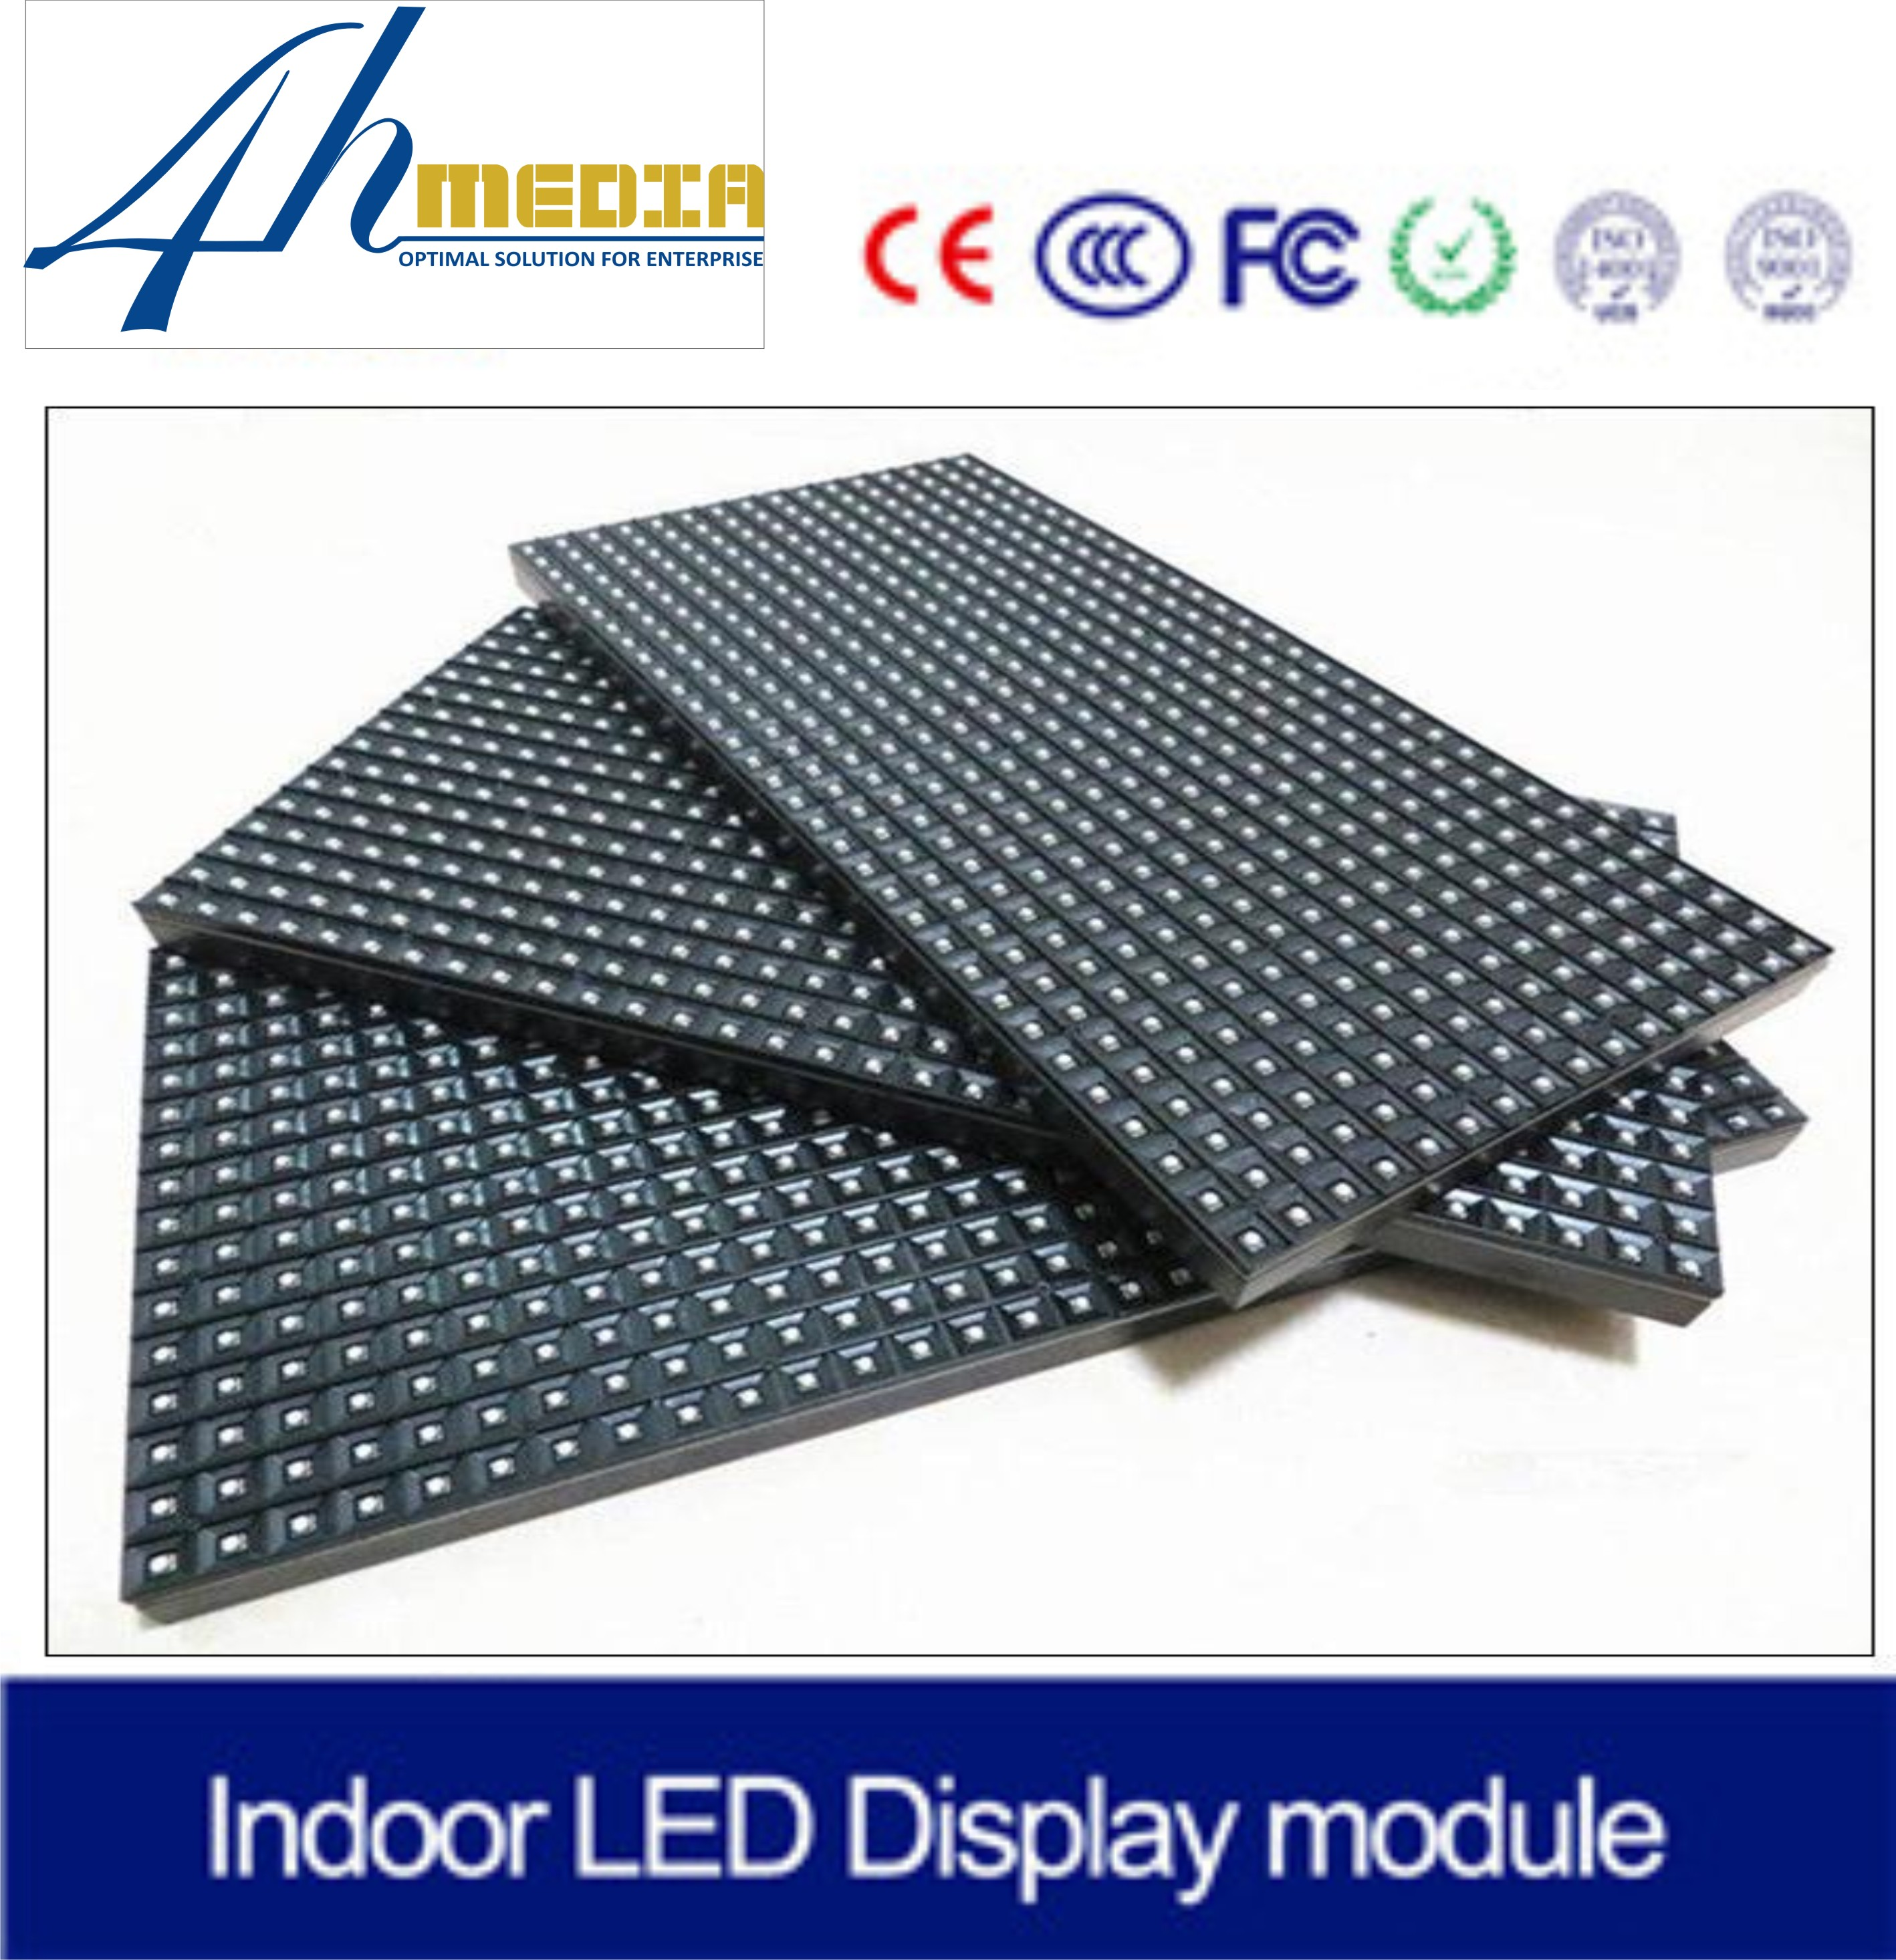 Module Led Indoor P6 size:192mm x 192mm,Module Led Indoor P6 size:192mm x 192mm